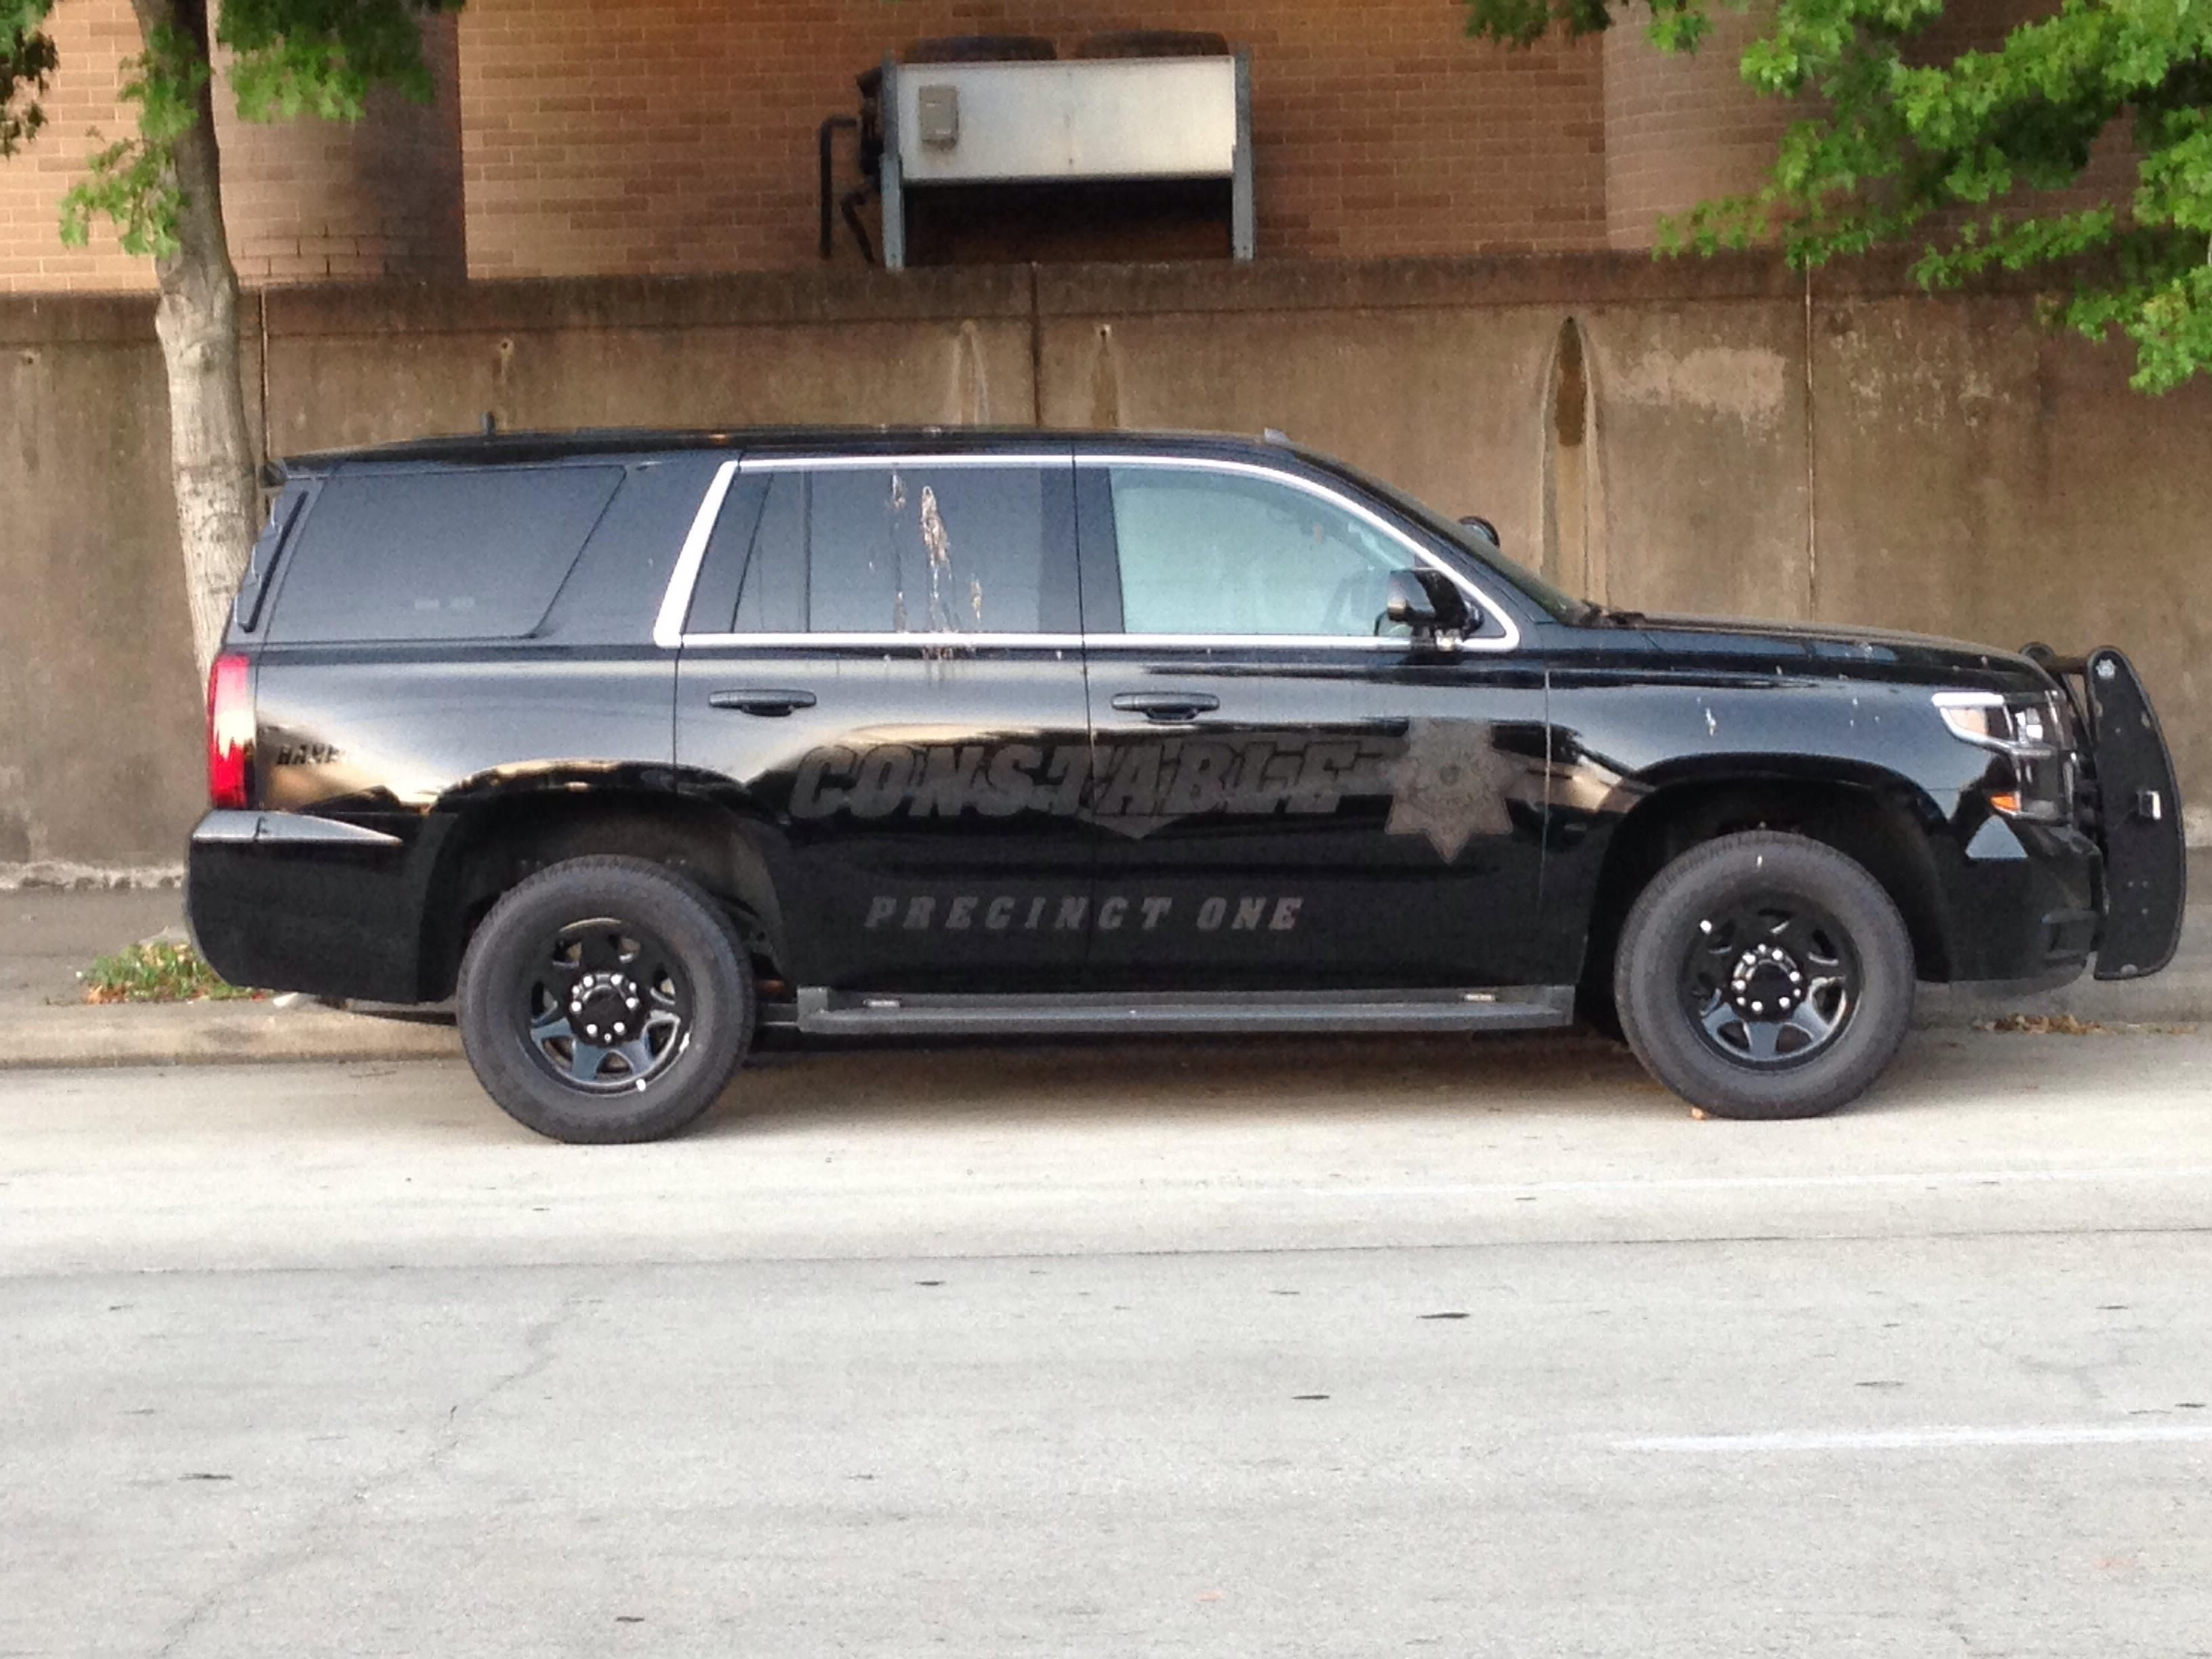 Harris County Constable Precinct 1 Ghost Chevy Tahoe Texas